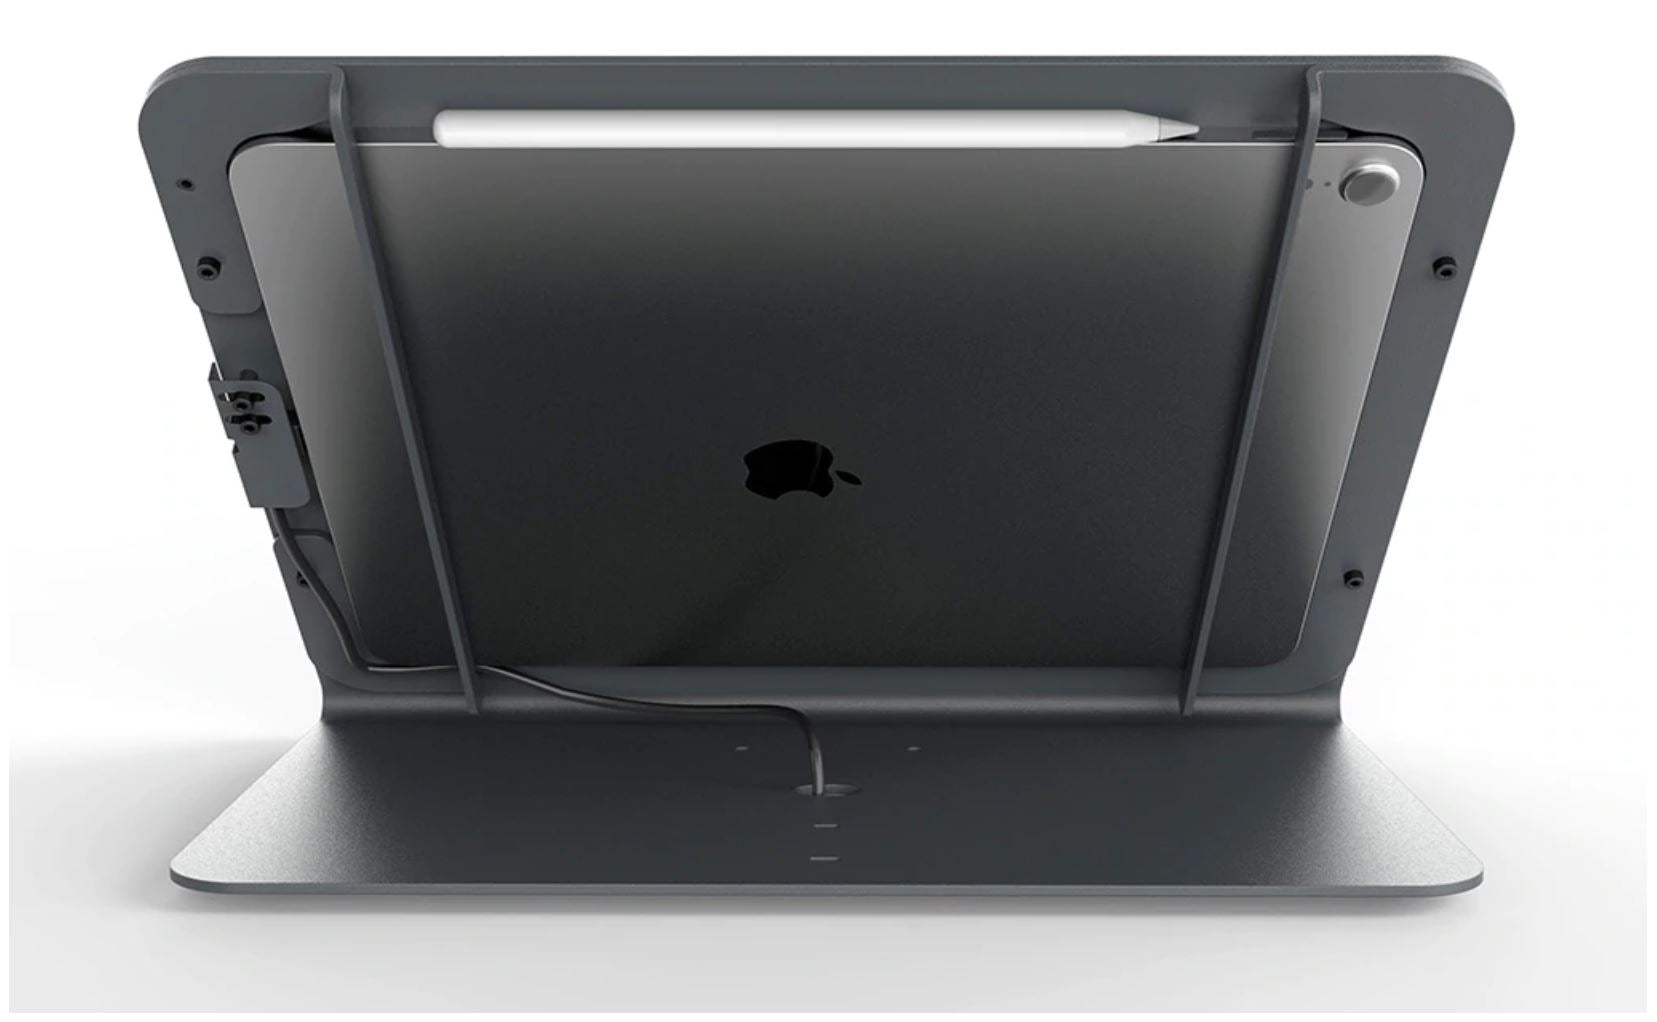 Heckler Windfall Stand Prime for iPad Pro 11.0, black, cables are hidden on the rear